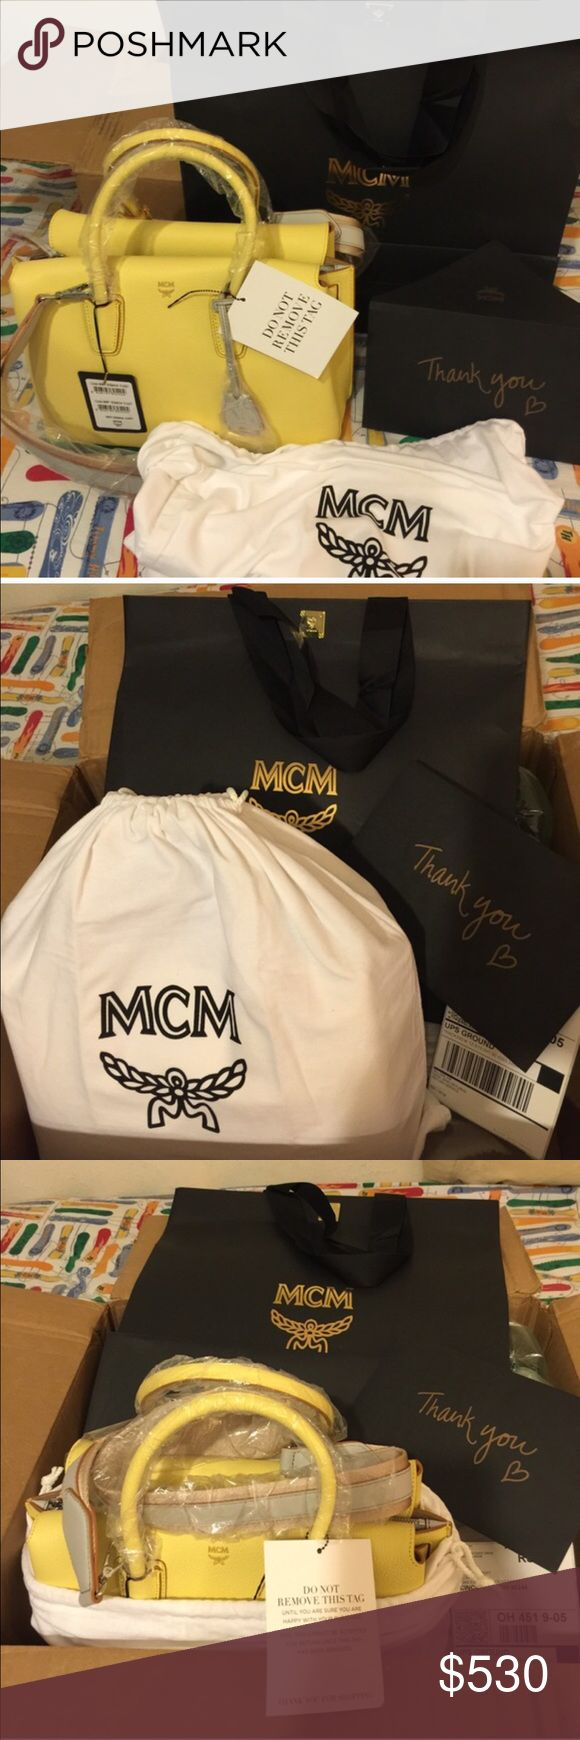 MCM brand new ! Mcm Milla Tote Custard brand new. Selling for my sister she received the package from usps however its a bit small for her body built she wants to sell just to get the money she spent for it.. No low ball offers ,, its PRACTICALLY NEW! Low ballers will be ignored,, this is an authentic bag. Poshmark concierge will authenticate before it will be shipped to the buyer. MCM Bags Totes